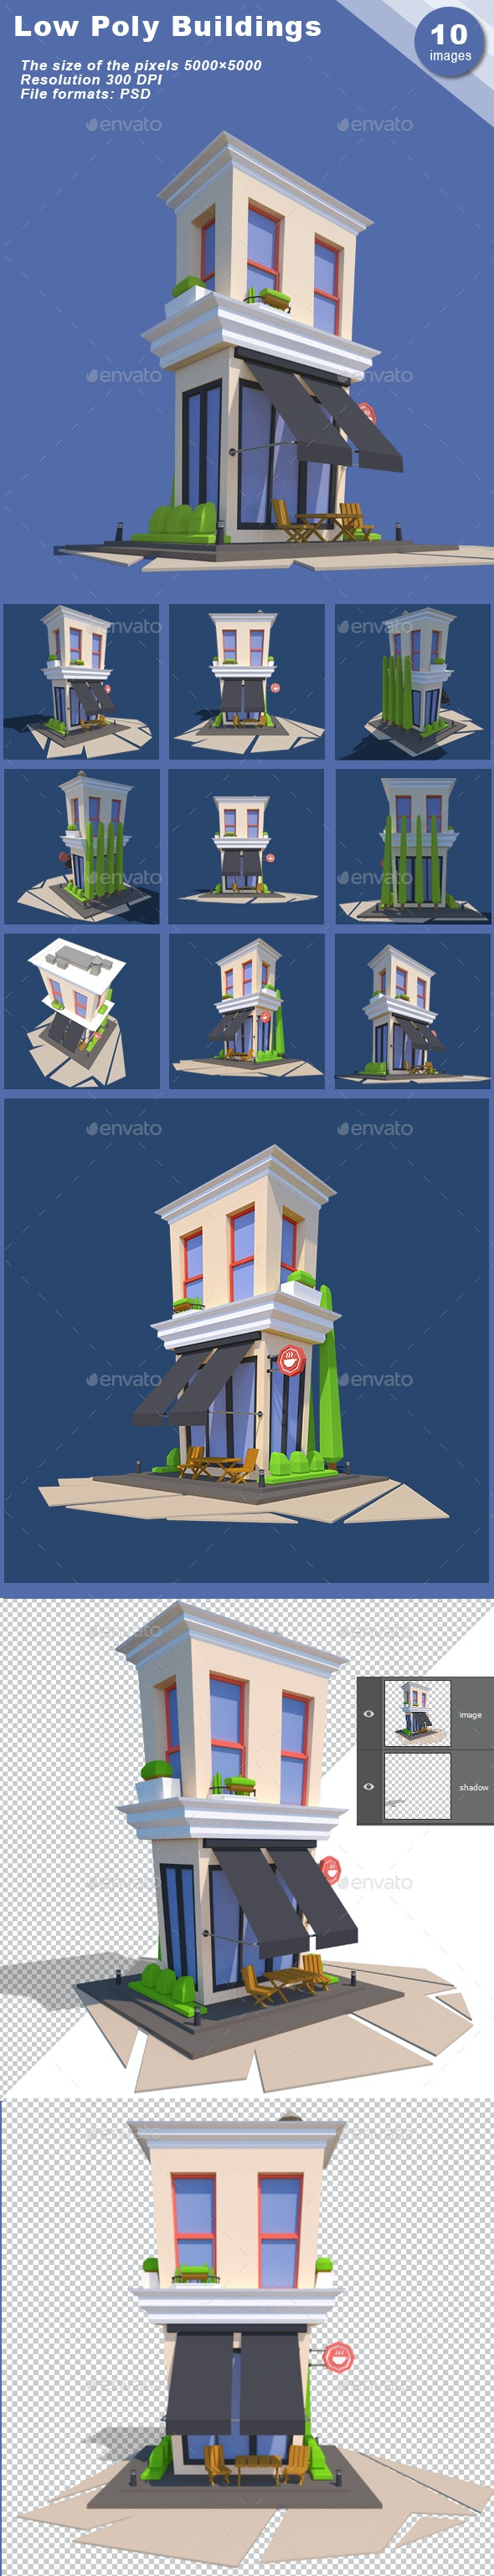 Low Poly Cafe - Architecture 3D Renders